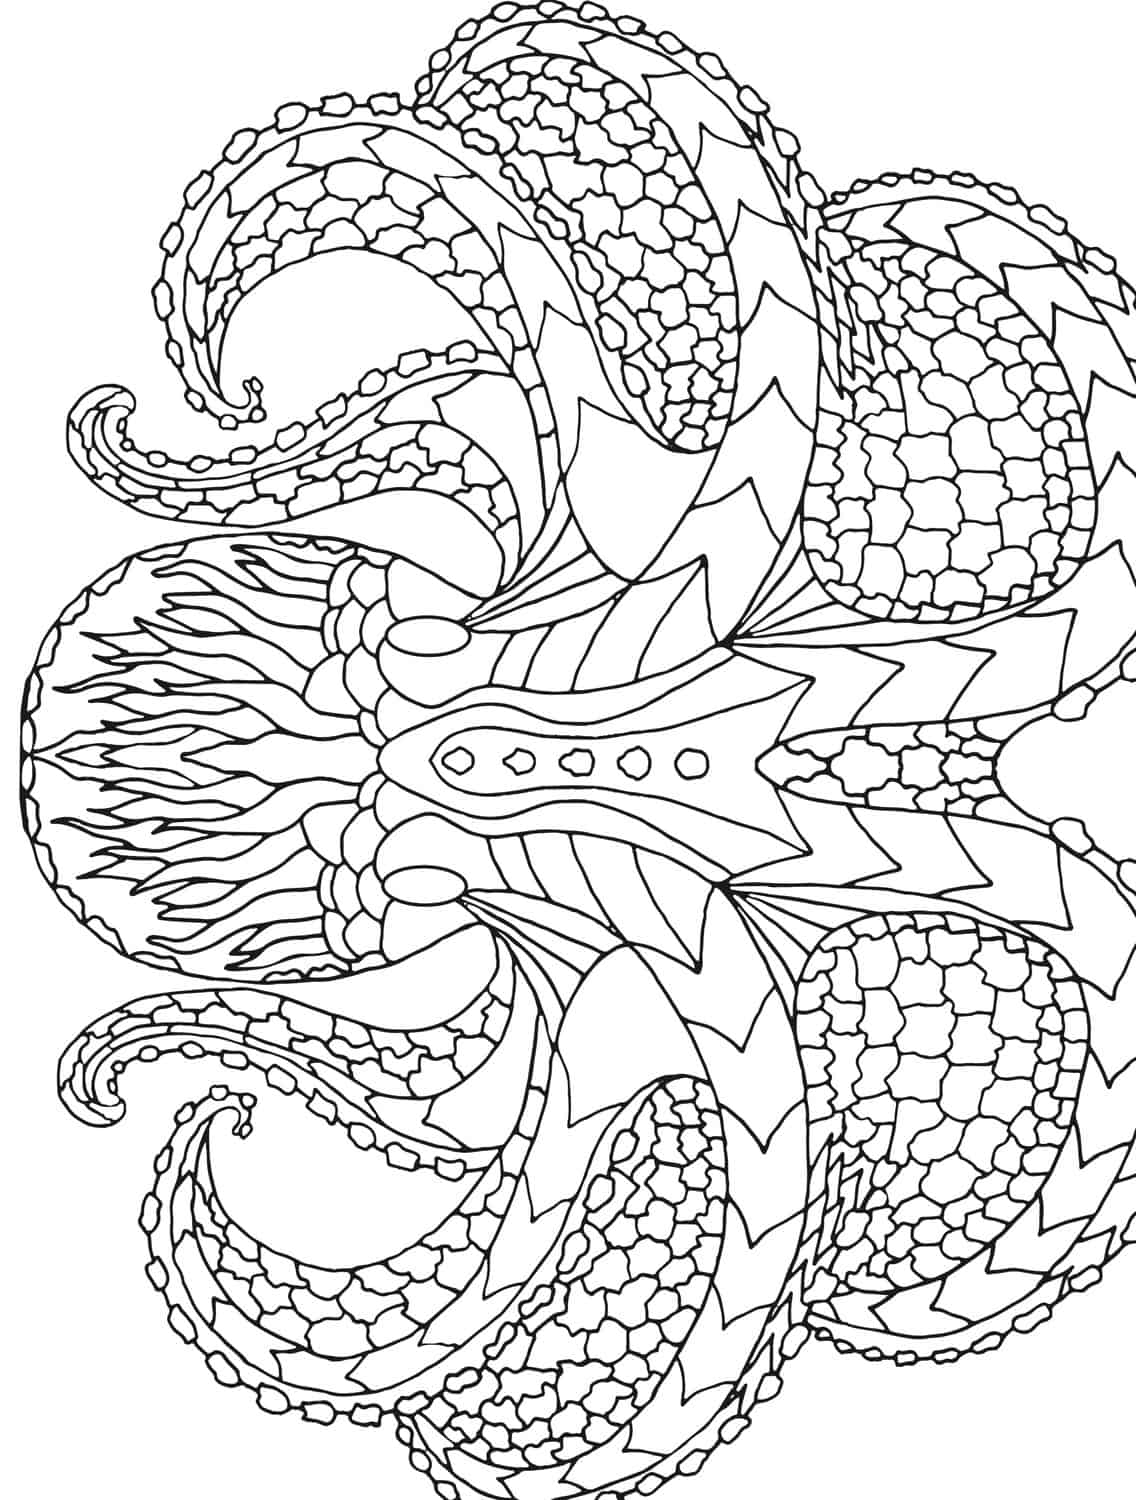 18 Absurdly Whimsical Adult Coloring Pages Page 7 of 20 Nerdy